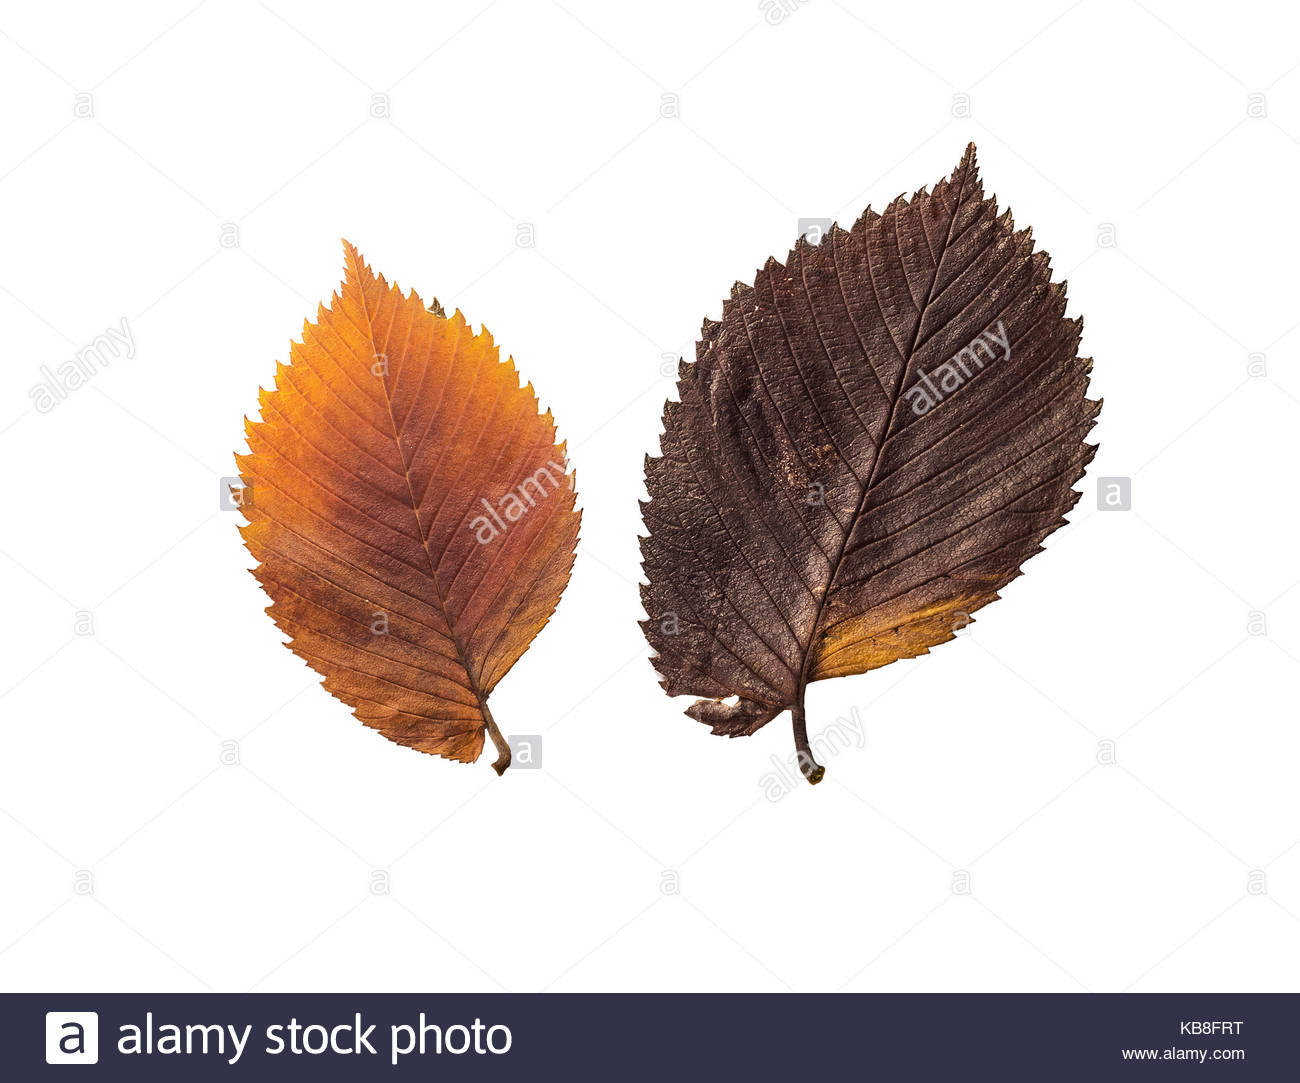 Autumn leaves. Elm. Isolated on white - Stock Image